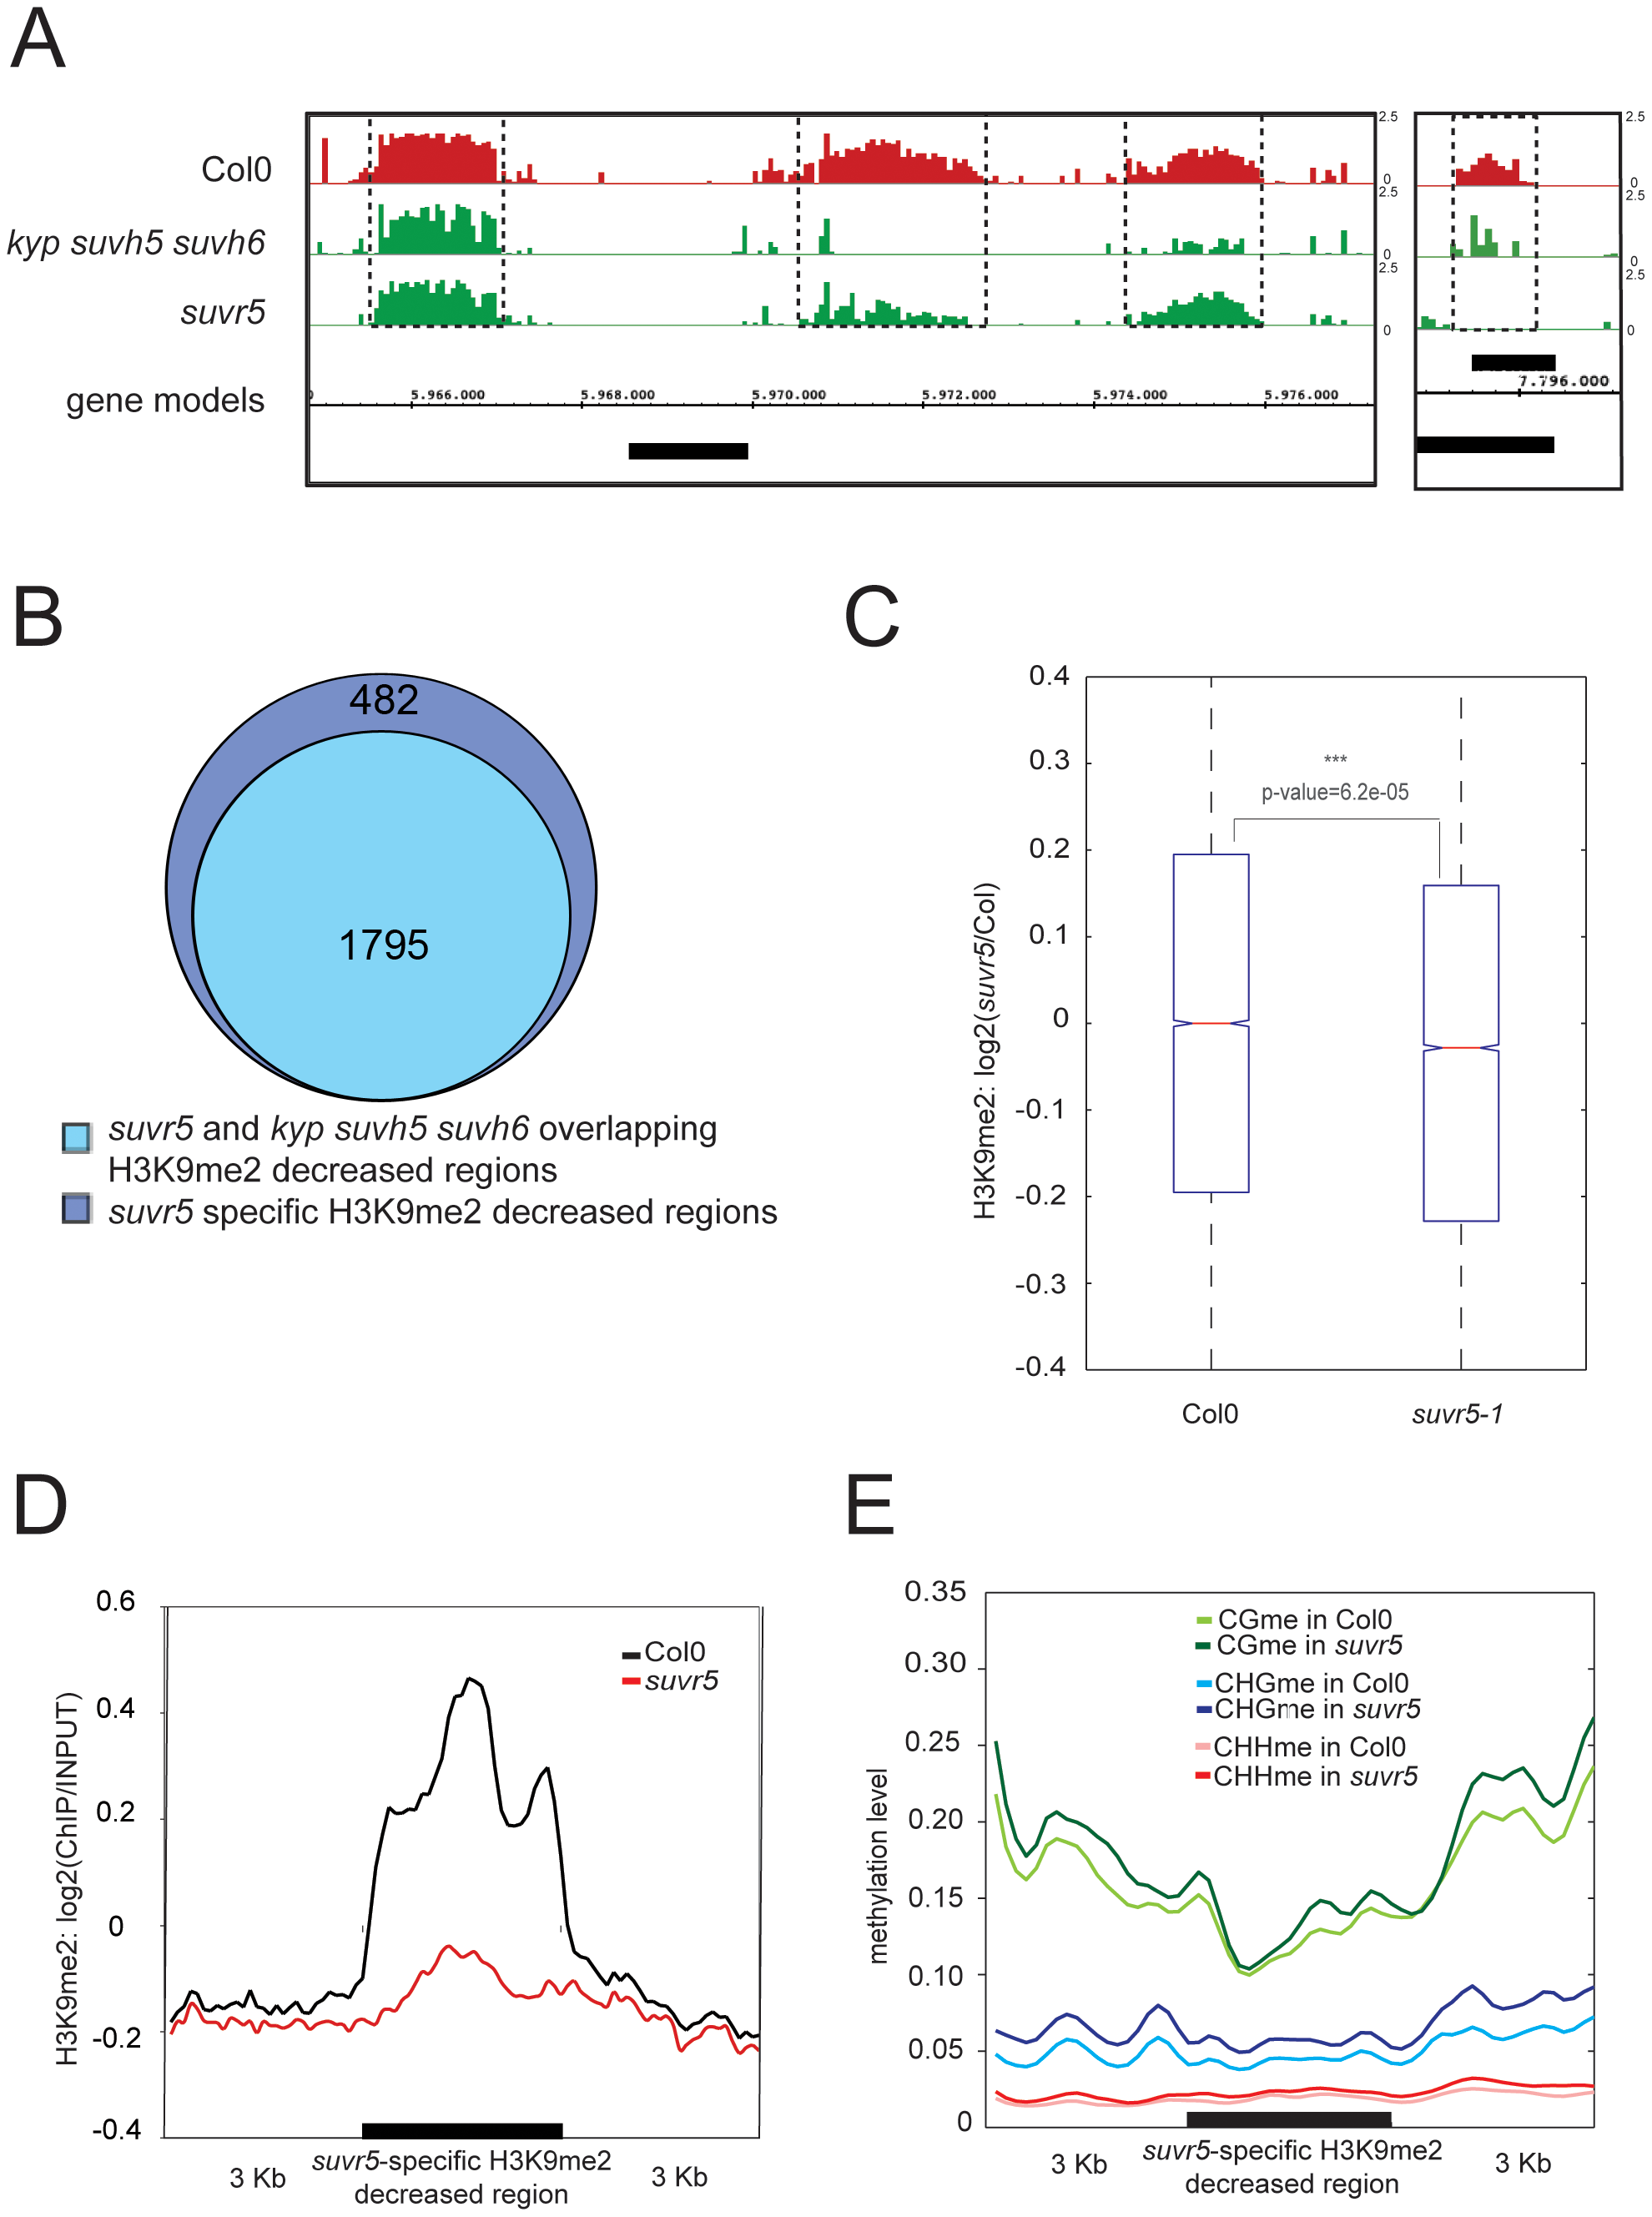 SUVR5-specific H3K9me2 deposition correlates with the zinc finger domain binding and promotes gene silencing.